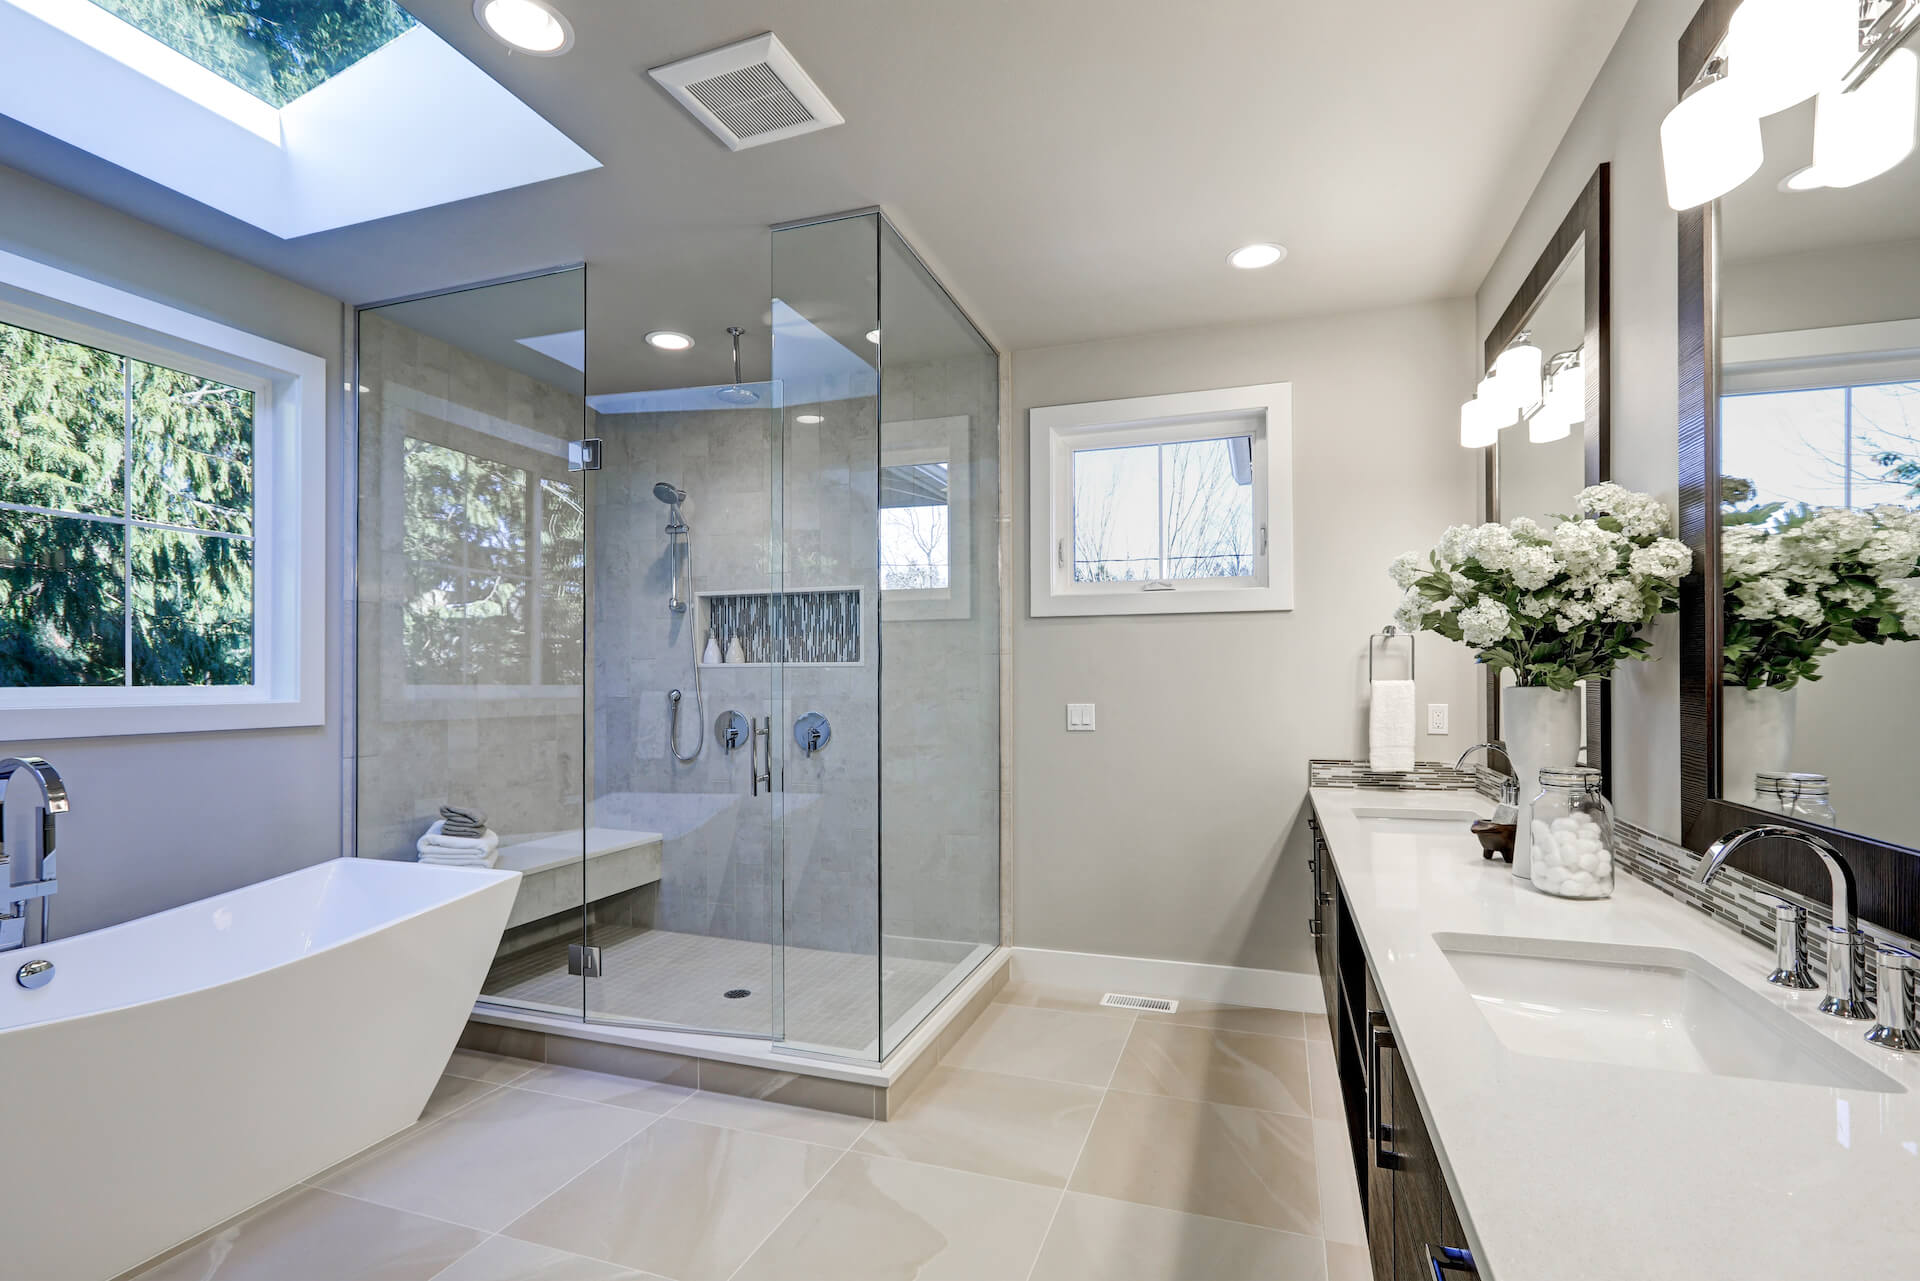 Bathroom Remodel with Frameless Glass Doors Chrome Fixtures Brown Cabinets